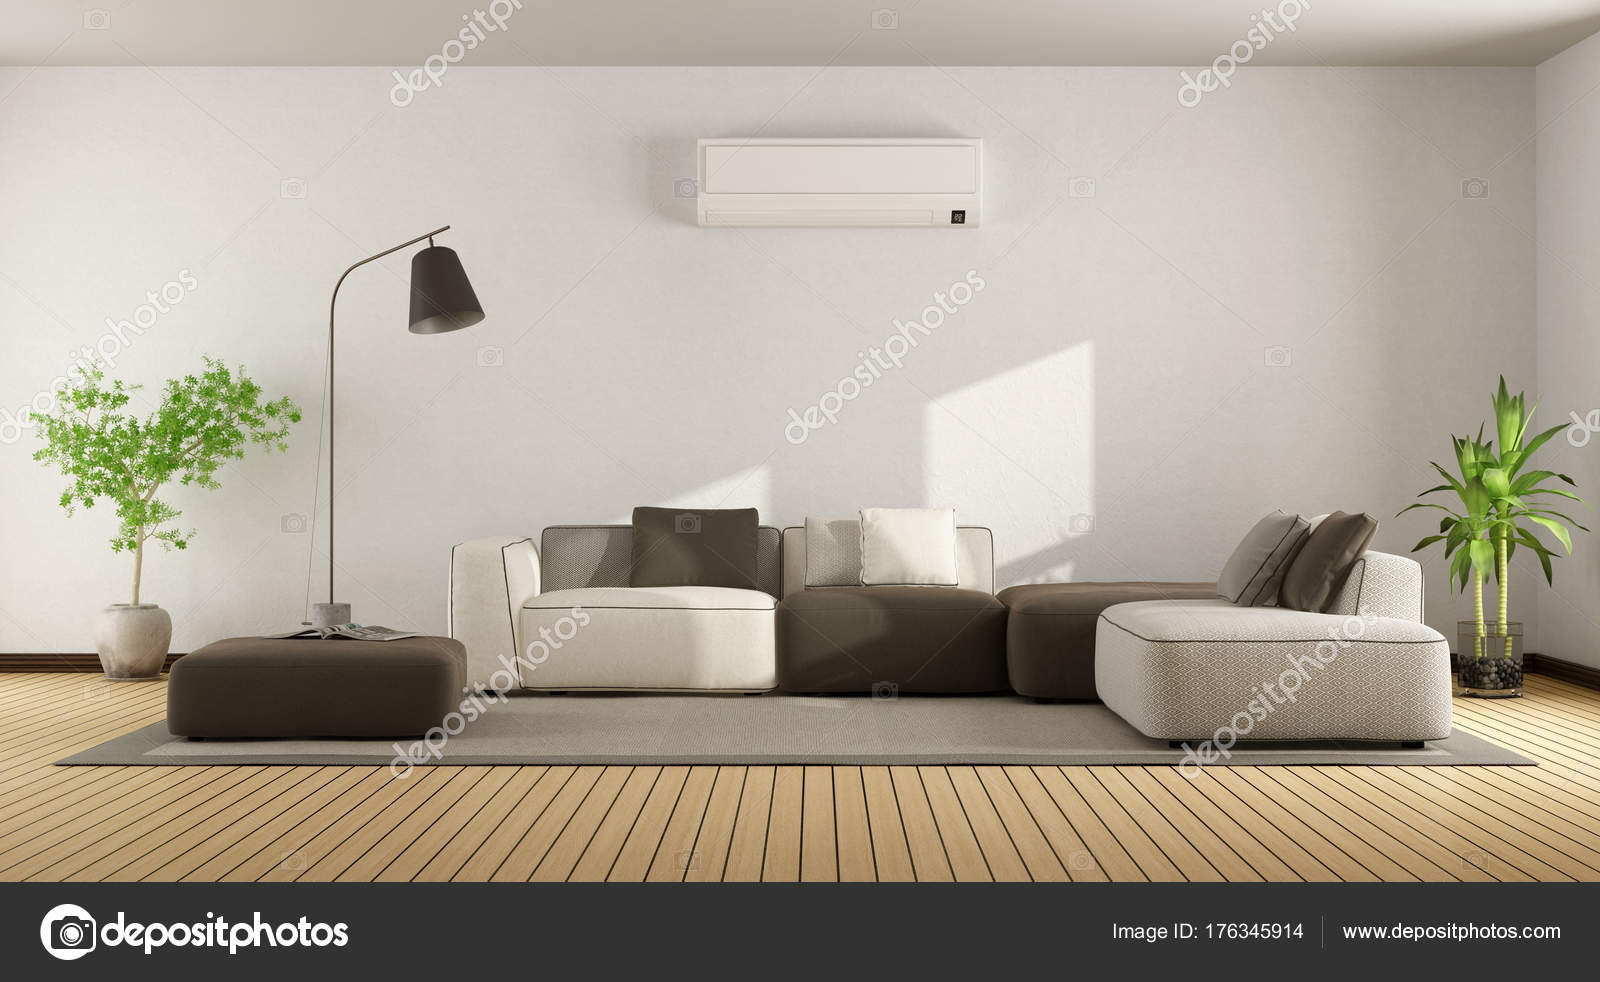 comlatest ac installation ductless guides your installing serviceseeking technology home system living pricing room right for conditioner choosing the an window air getductlessac blog cost of